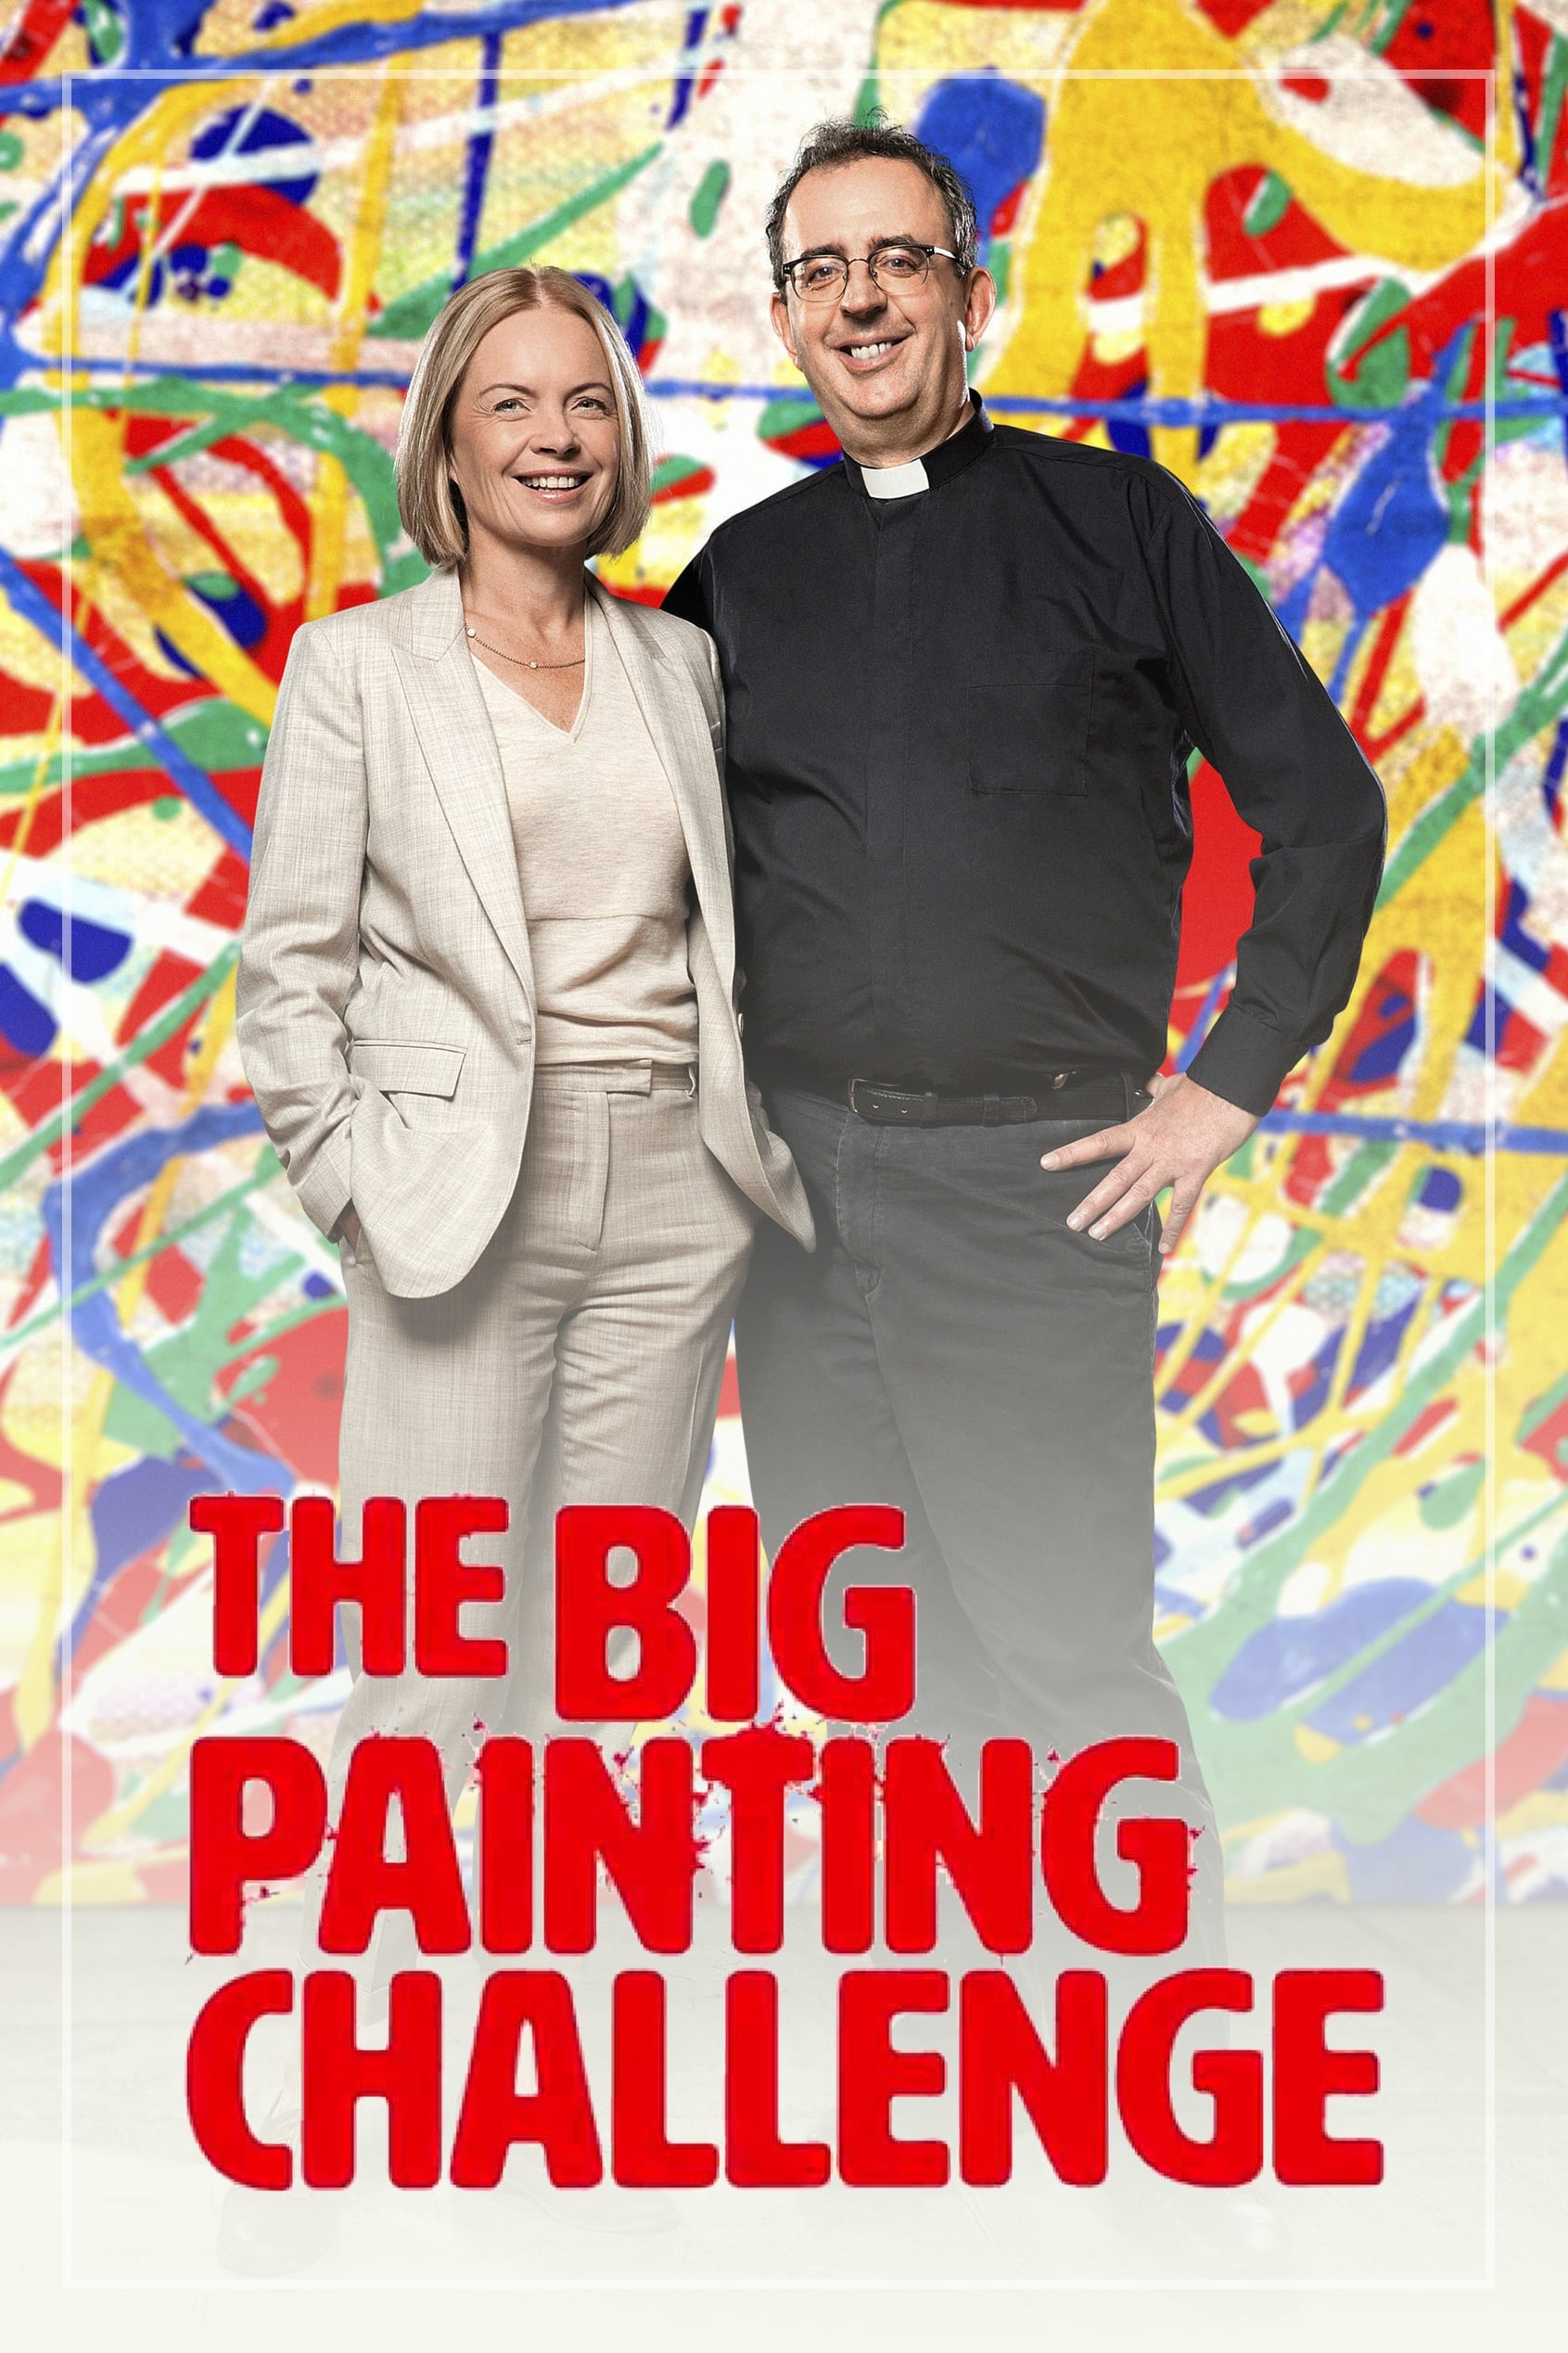 The Big Painting Challenge (2017)